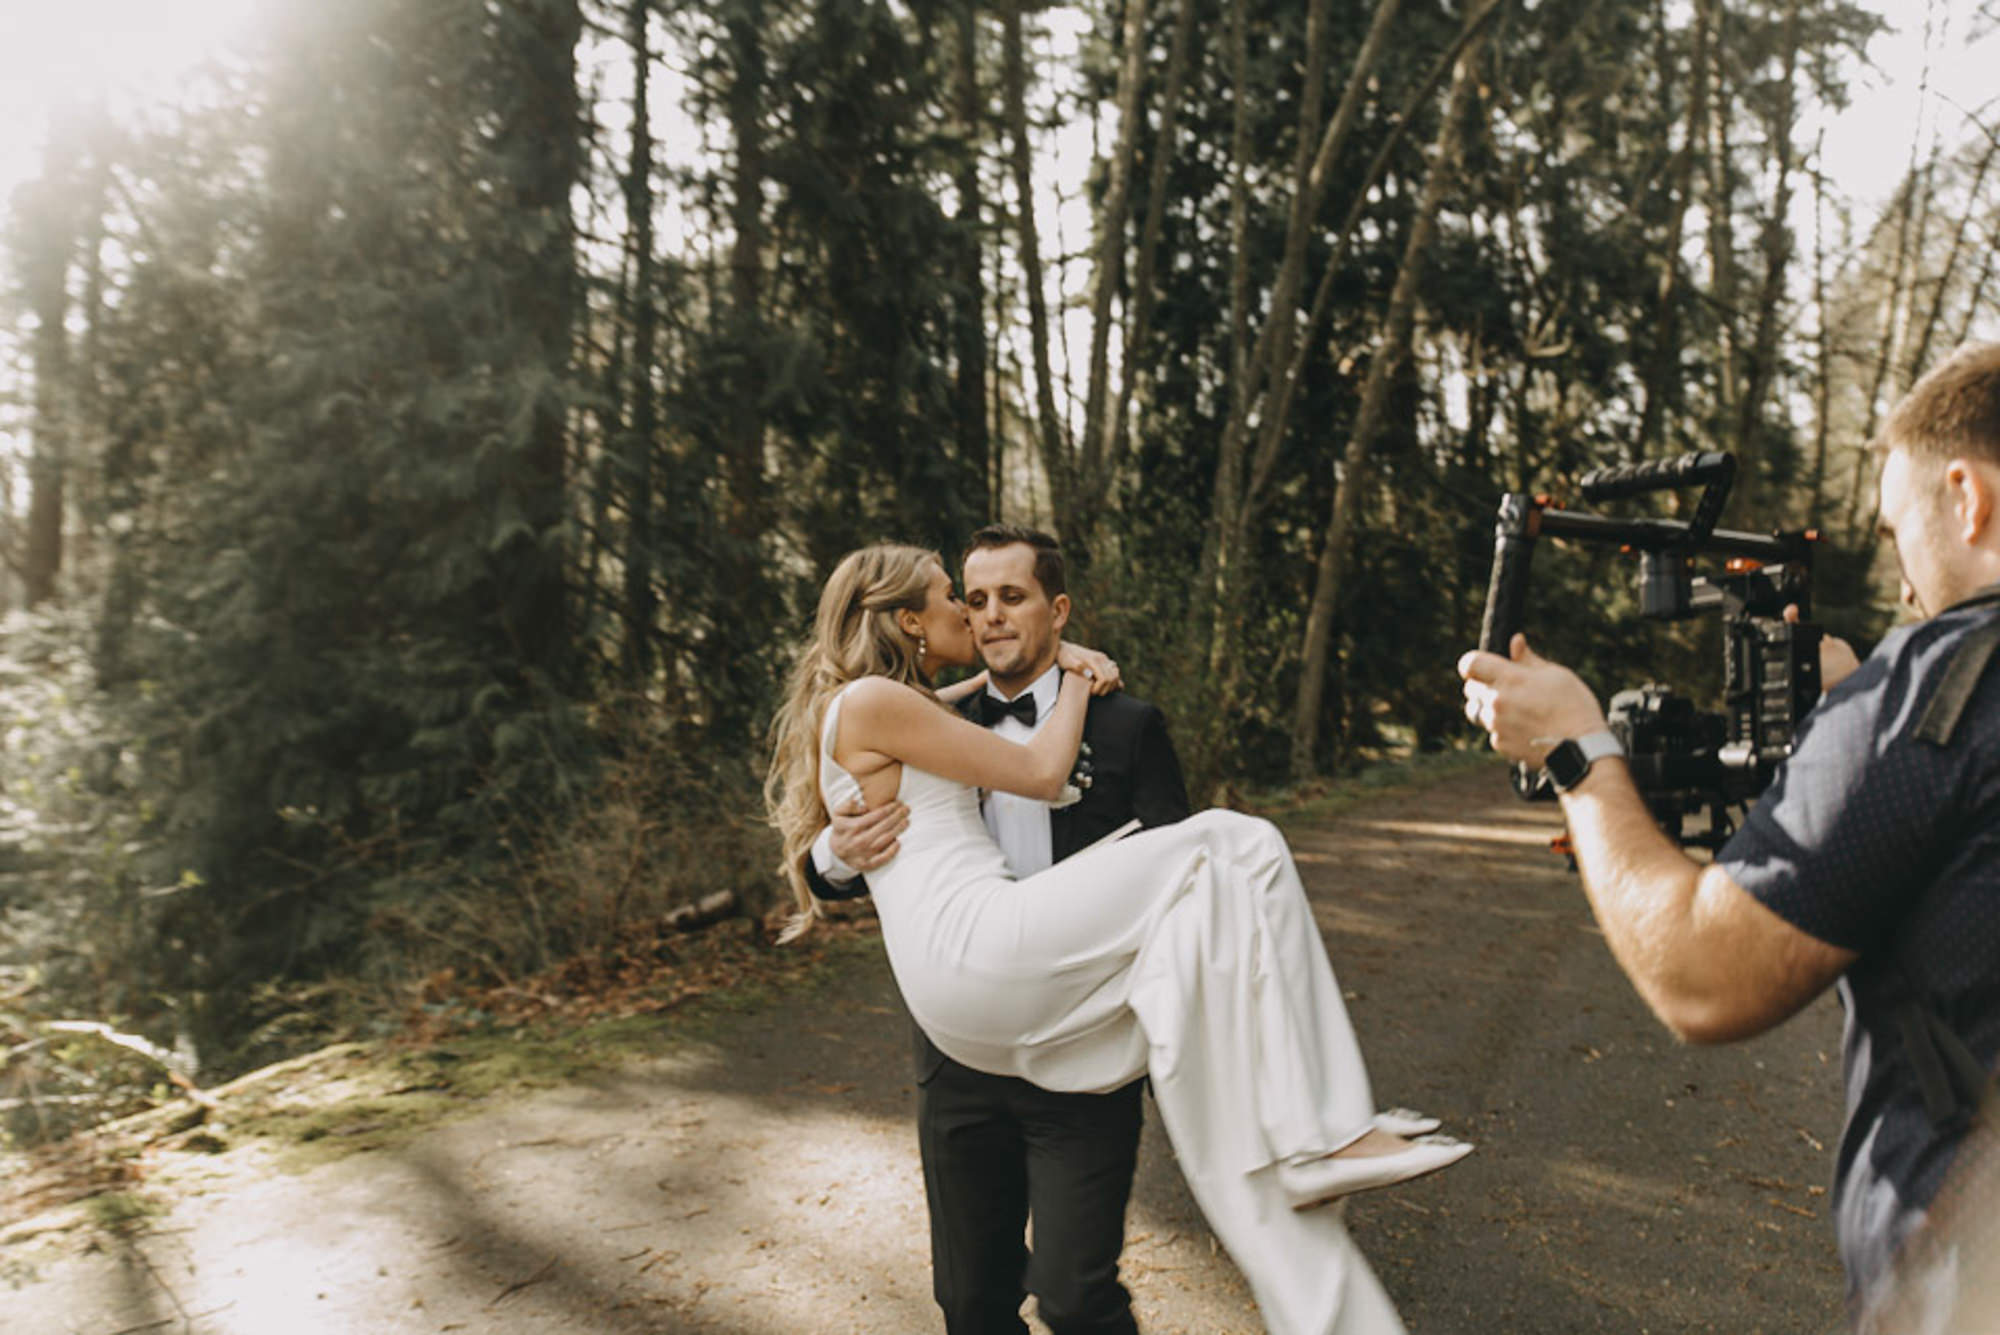 seattle-wedding-firstlook-discovery-park-photographer-portland-sarahseven-641-31.jpg